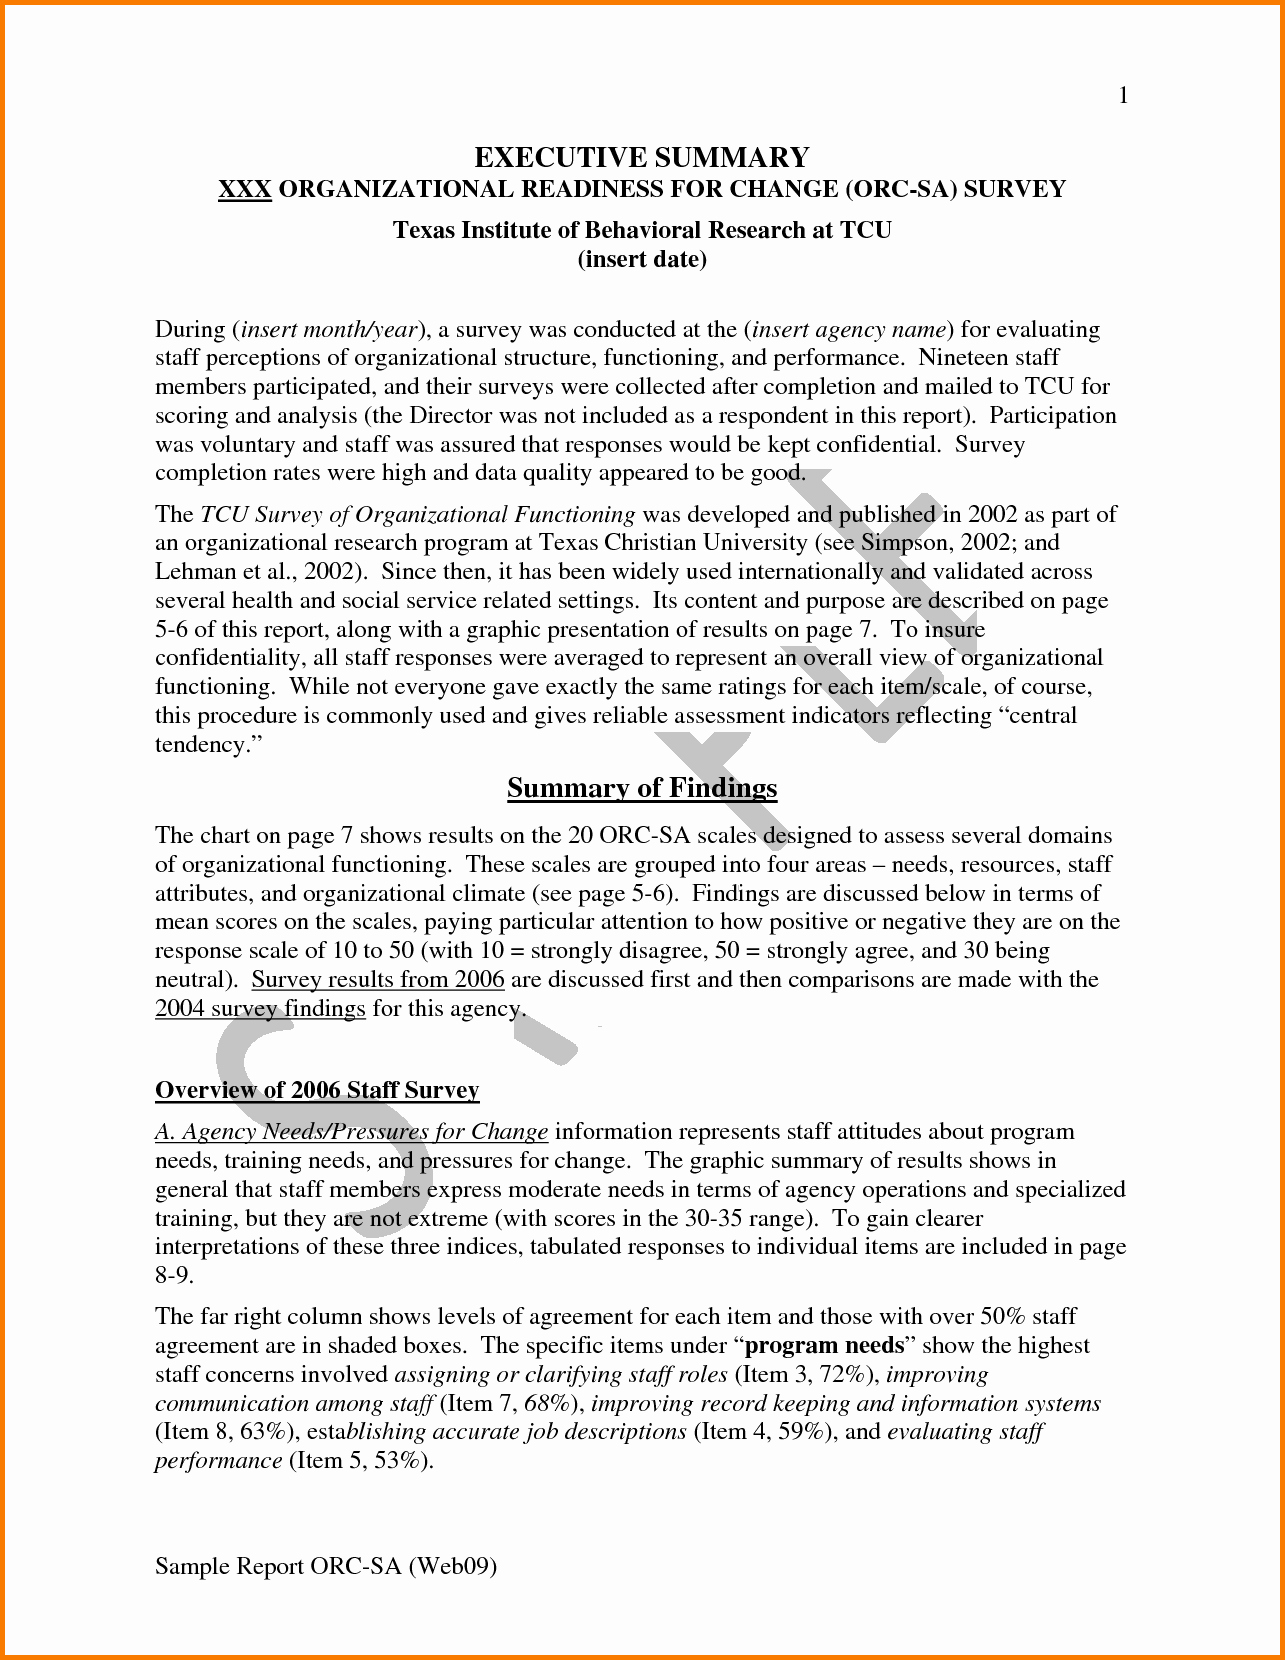 Executive Summary Financial Report Template New 6 Executive Summary Report Sample